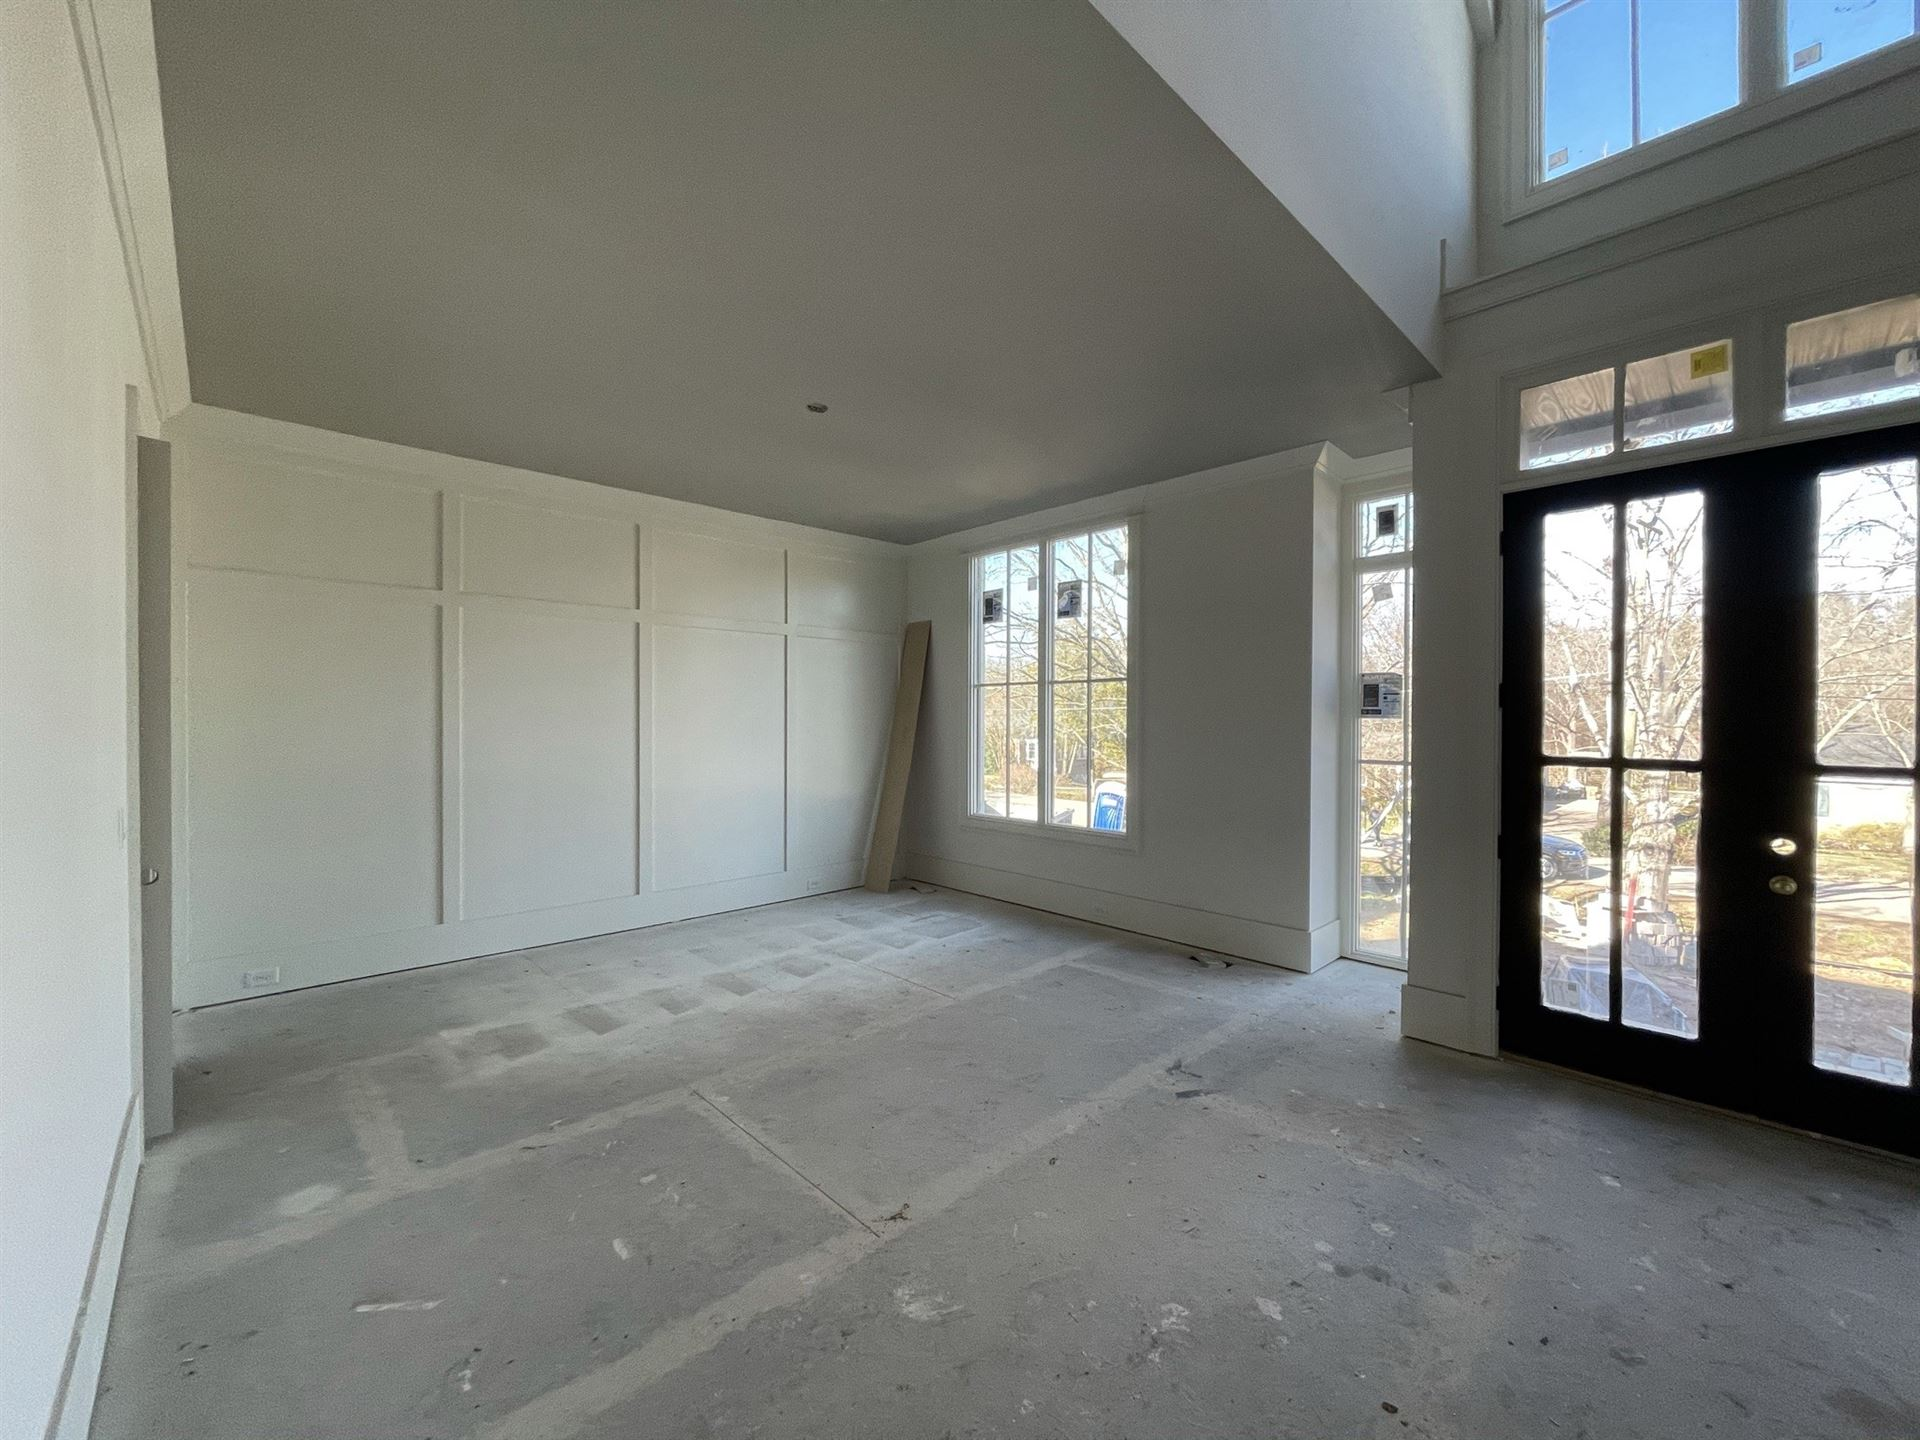 Photo of 2847 Sugartree Rd, Nashville, TN 37215 (MLS # 2212804)